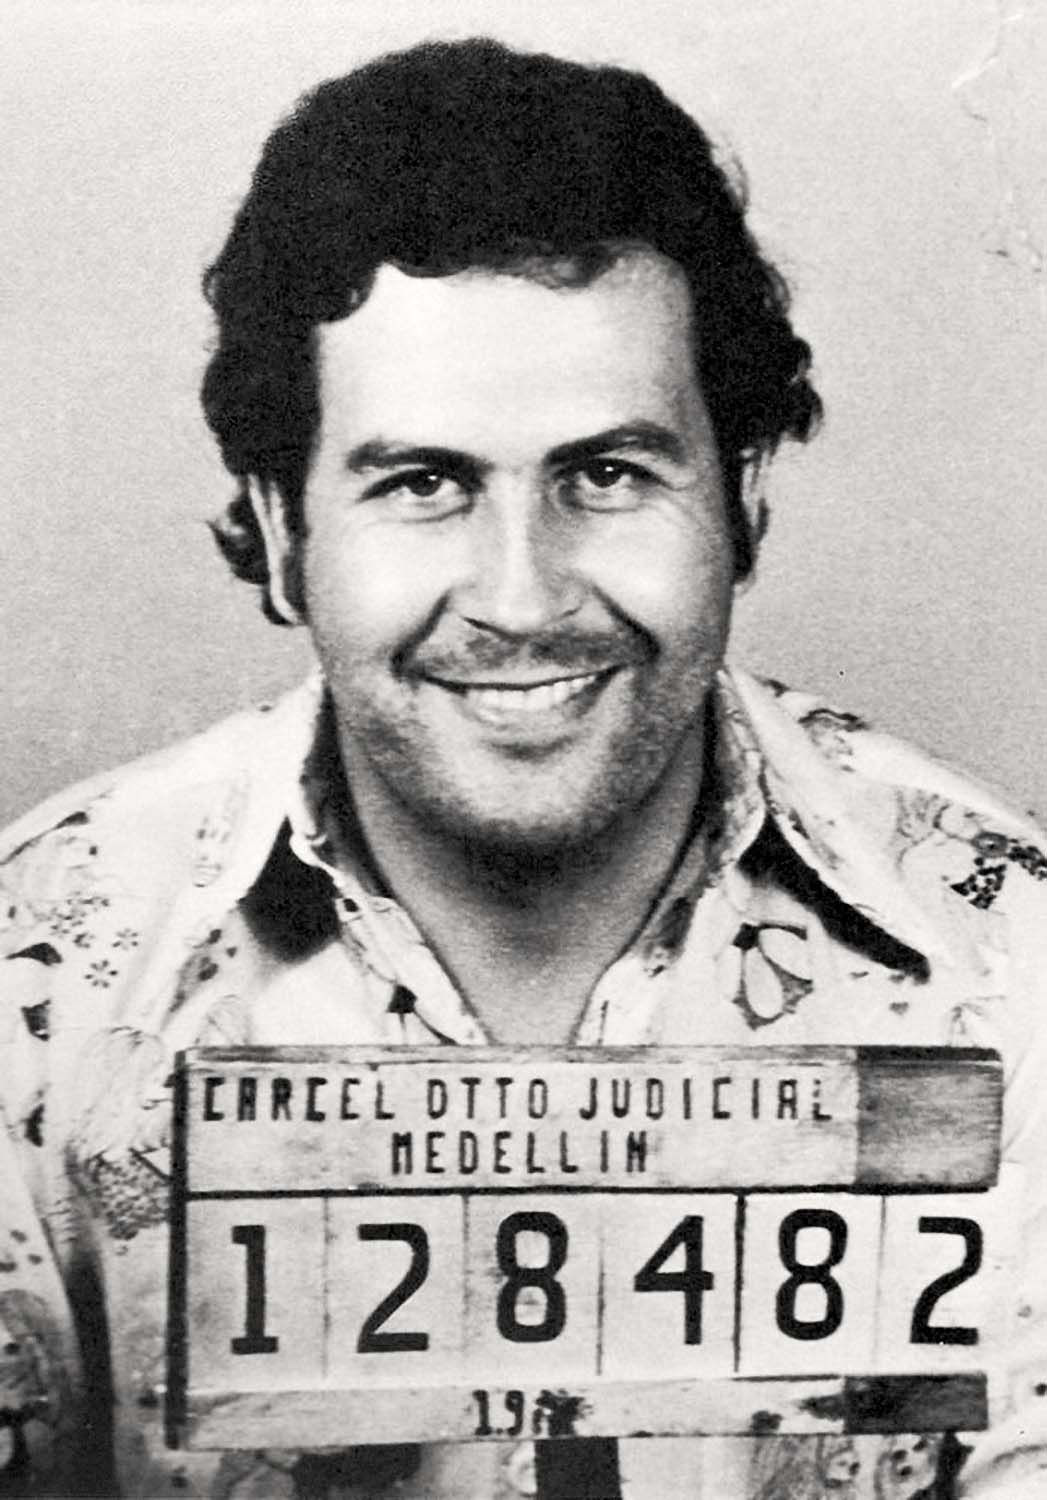 Pablo Escobar mugshot in 1977 by the Medellin Control Agency. At the height of his power, Escobar imported $70mm per day of cocaine into the U.S.